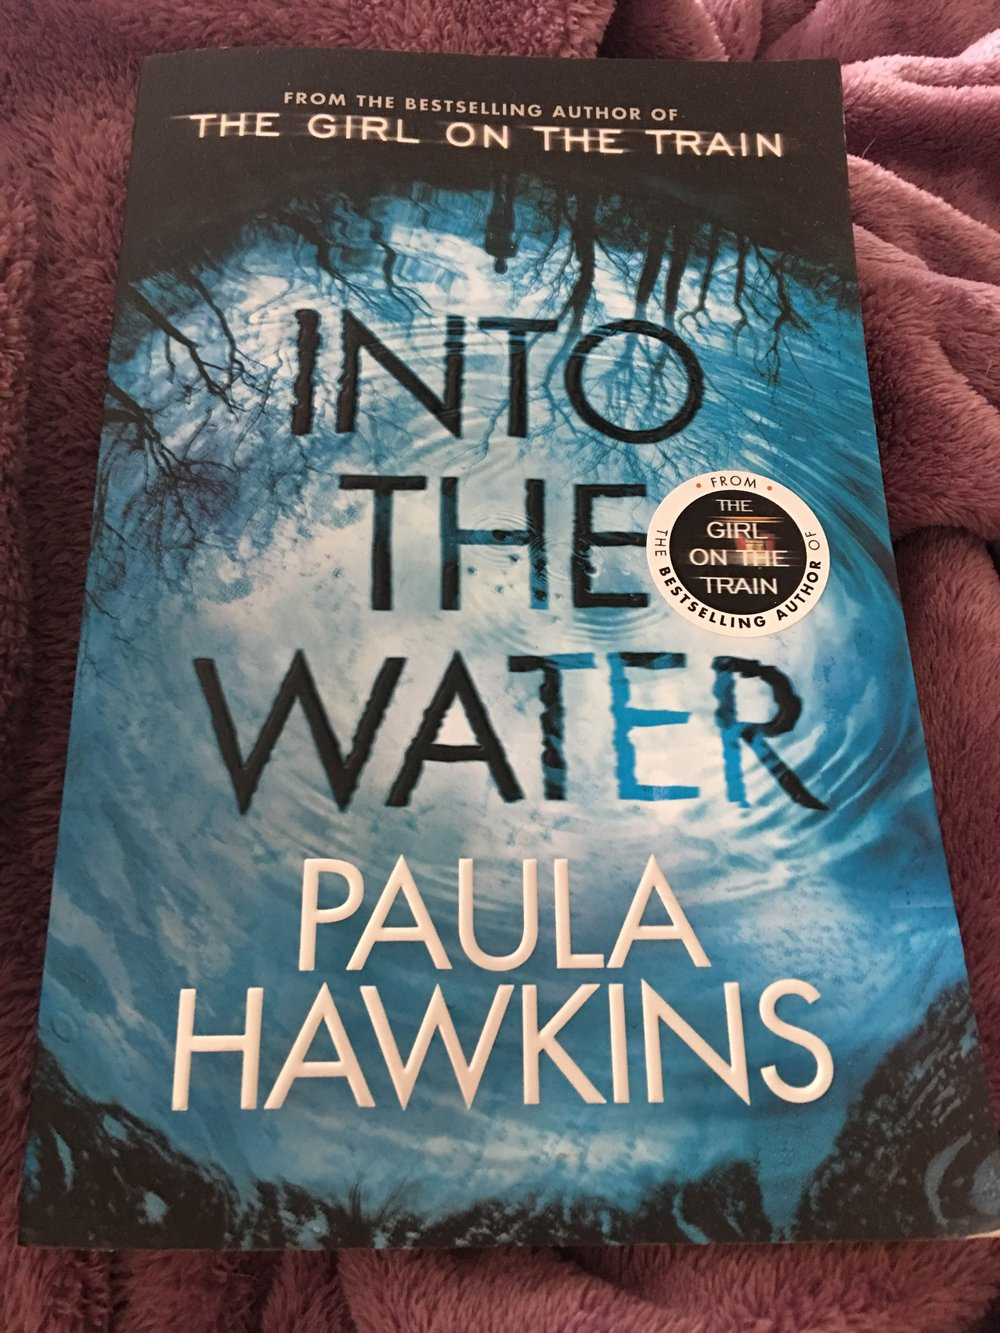 Into the Water - By Paula Hawkins | StandaloneMy rating: 4 stars  |  Pages: 356What made me pick it up: I was curious after not liking The Girl on the TrainFormat: Paperback  |  Source: Borrowed2018 challenge/s: Goodreads 2018 Reading Challenge